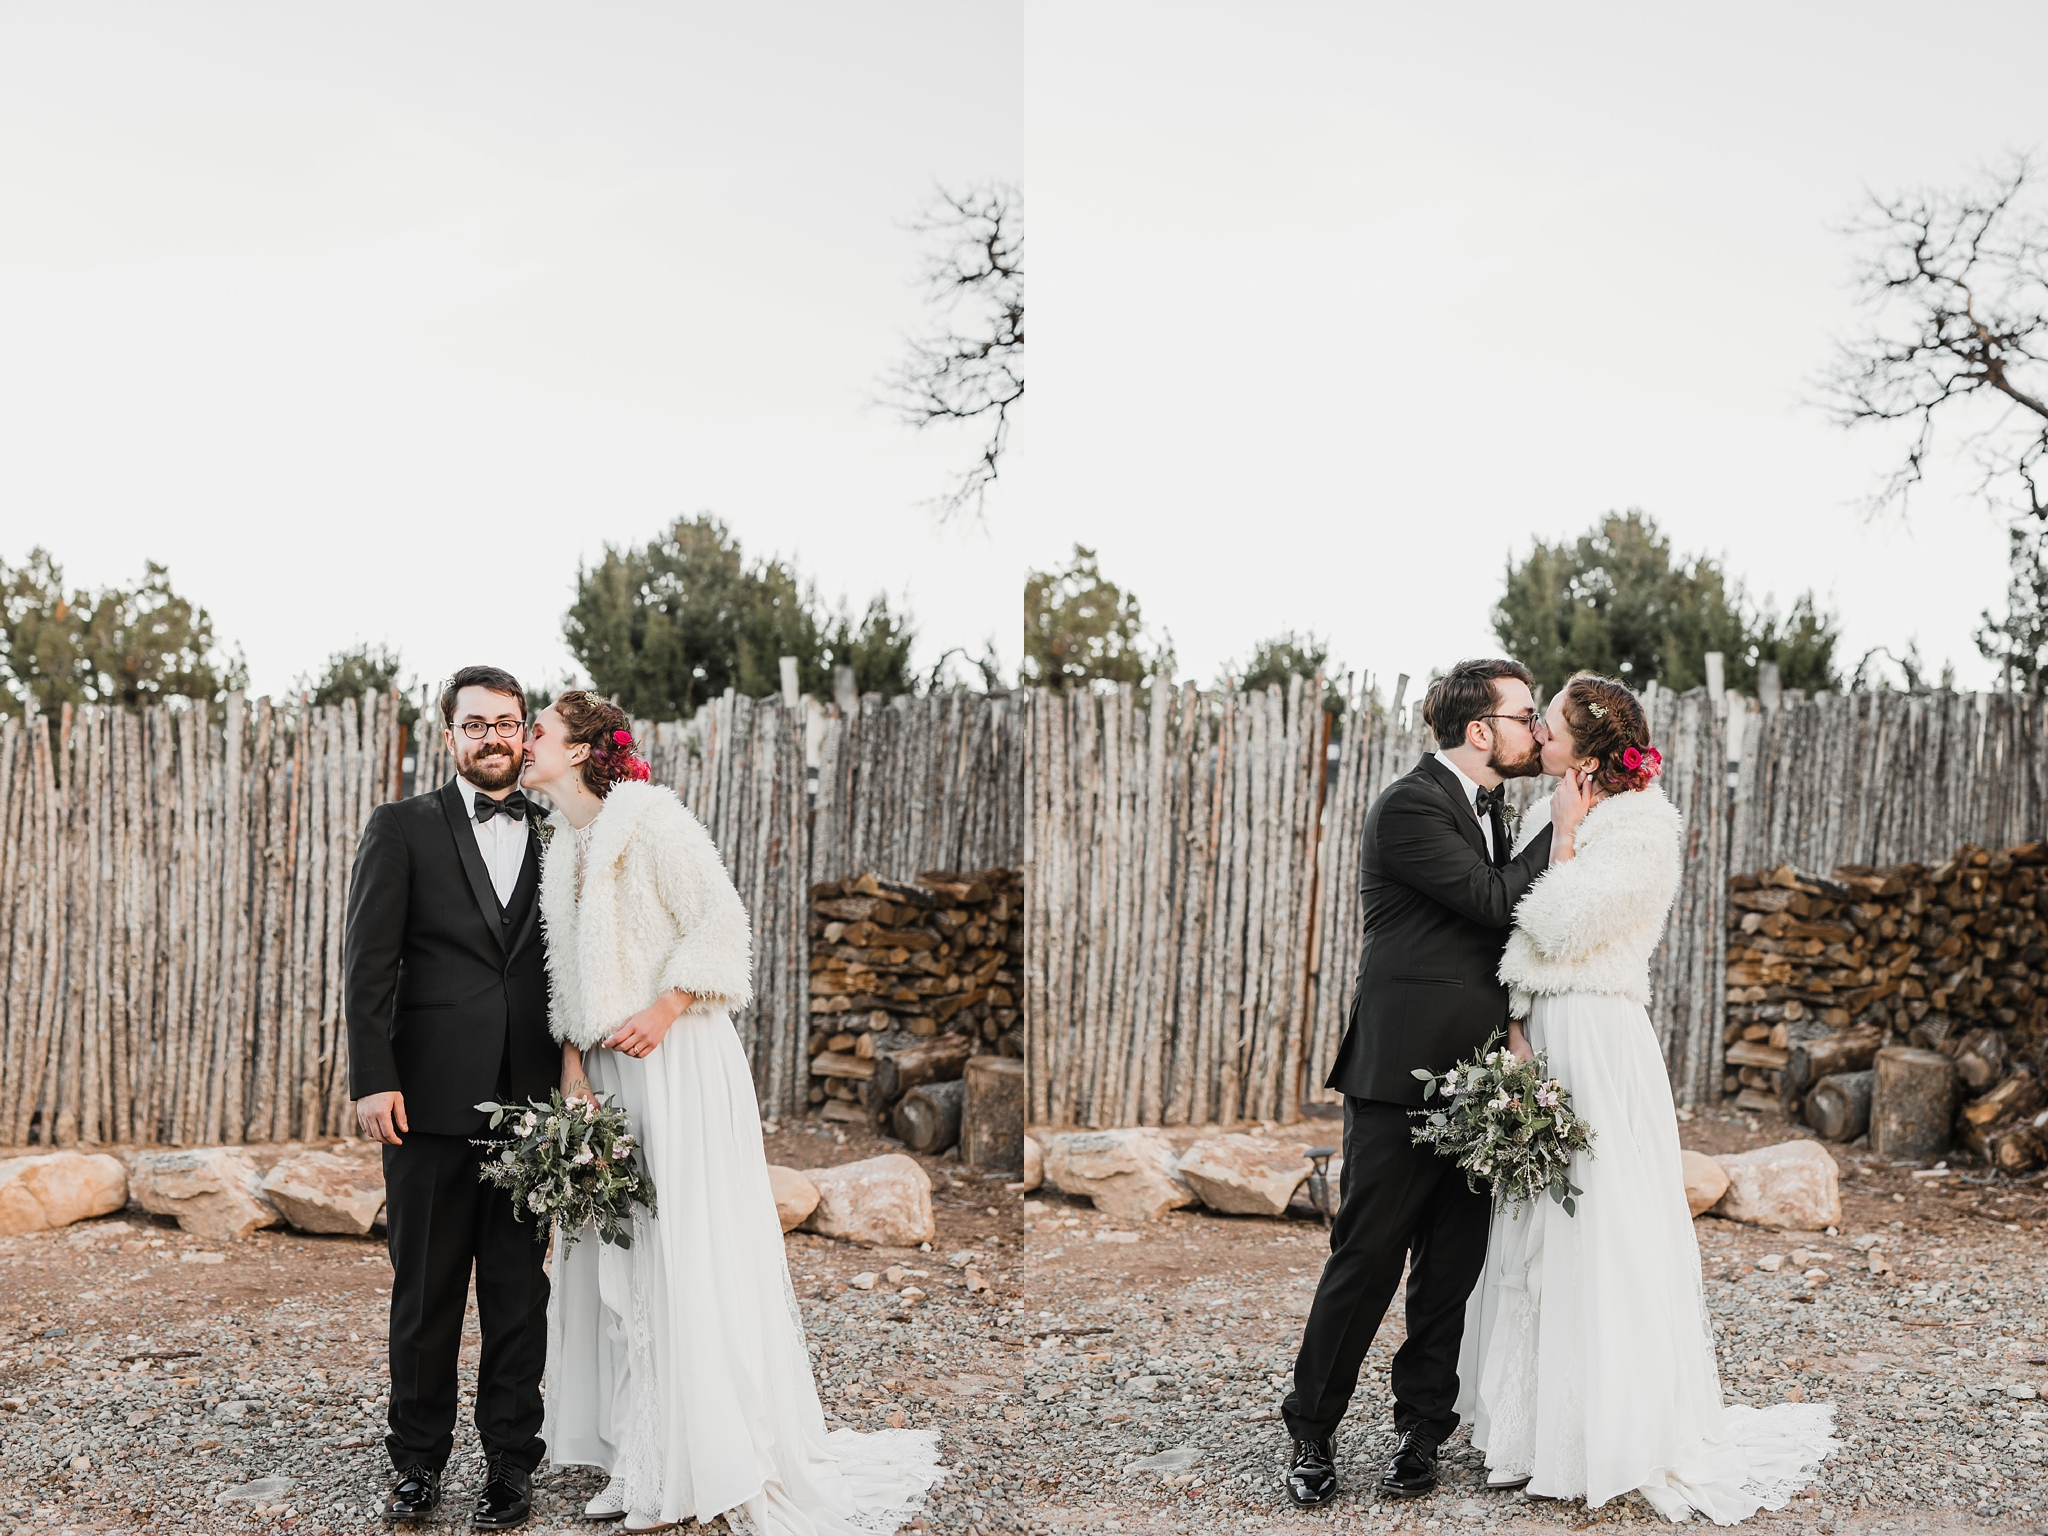 Alicia+lucia+photography+-+albuquerque+wedding+photographer+-+santa+fe+wedding+photography+-+new+mexico+wedding+photographer+-+new+mexico+wedding+-+engagement+-+santa+fe+wedding+-+hacienda+dona+andrea+-+hacienda+dona+andrea+wedding_0073.jpg